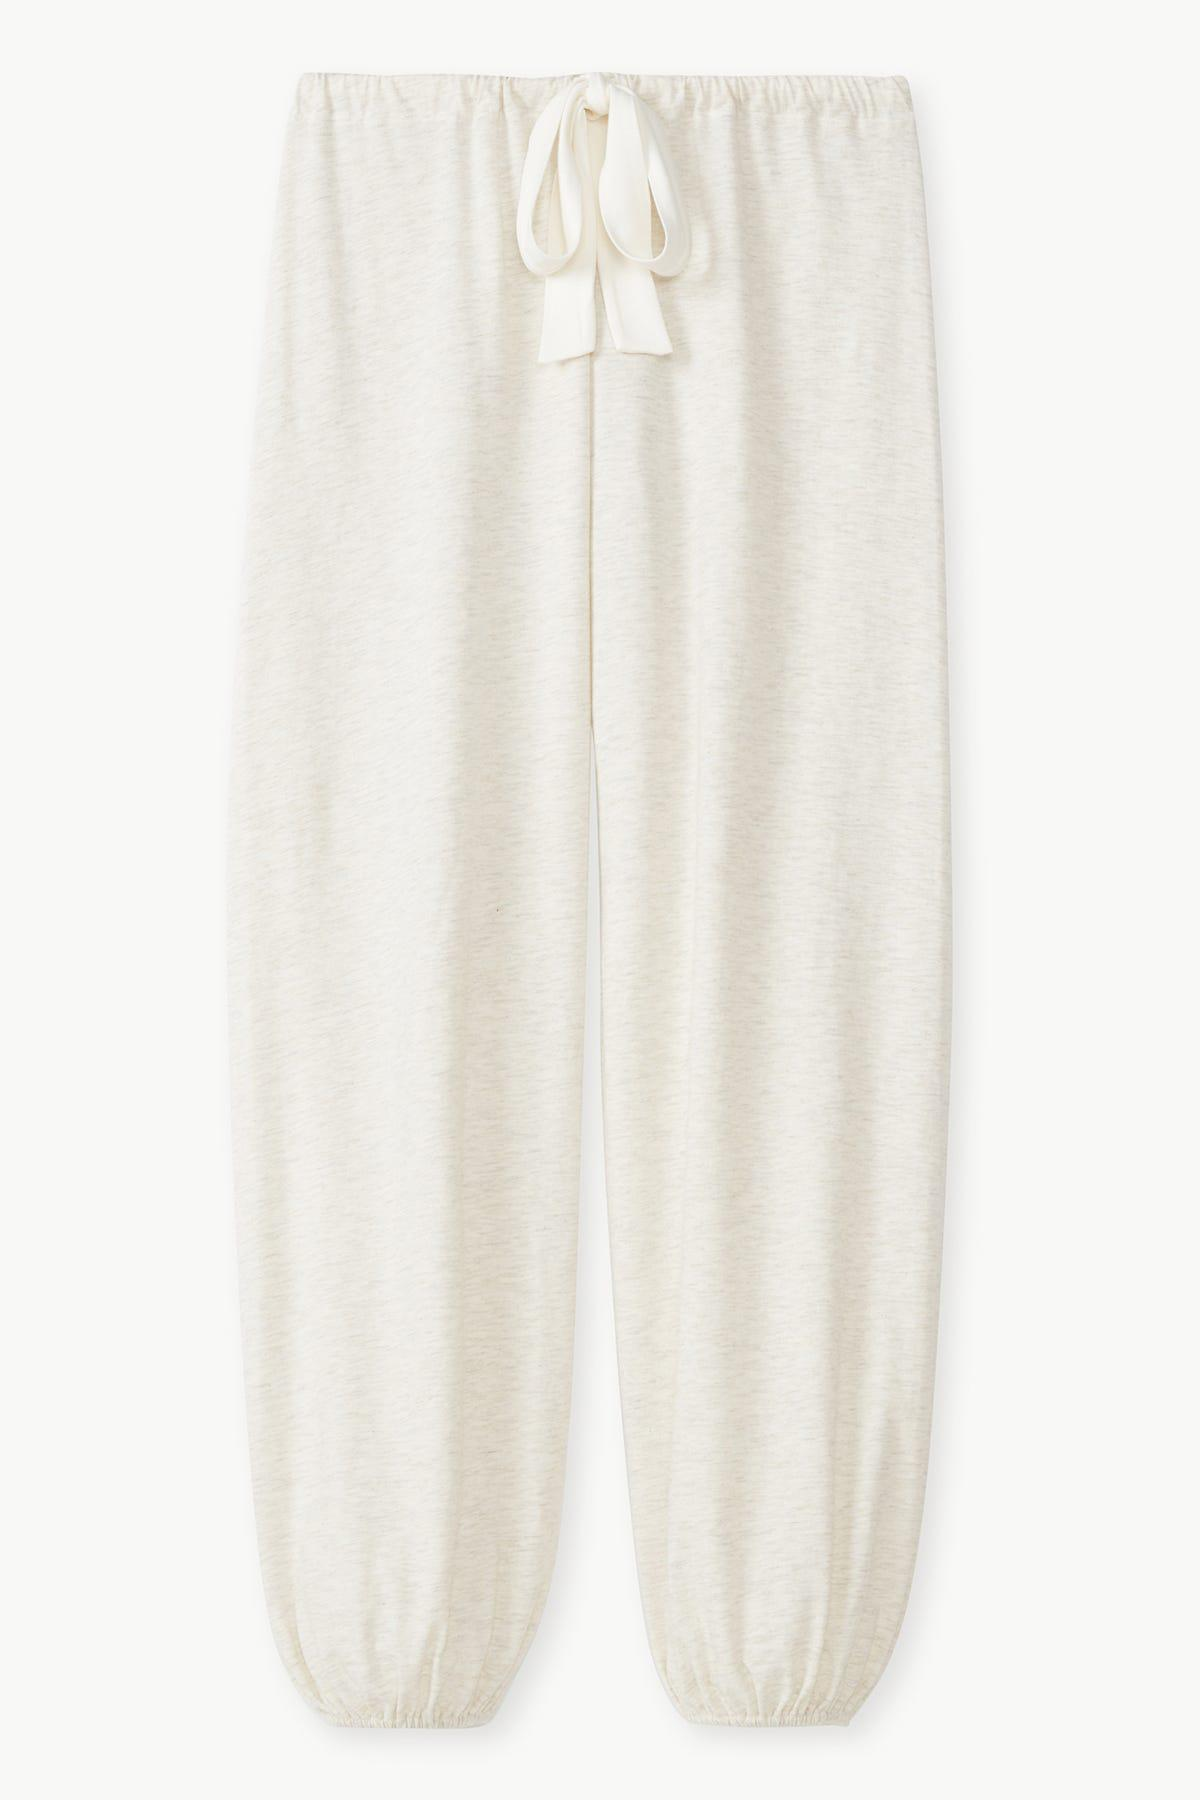 Heather Cotton Blend Cropped Pant 2